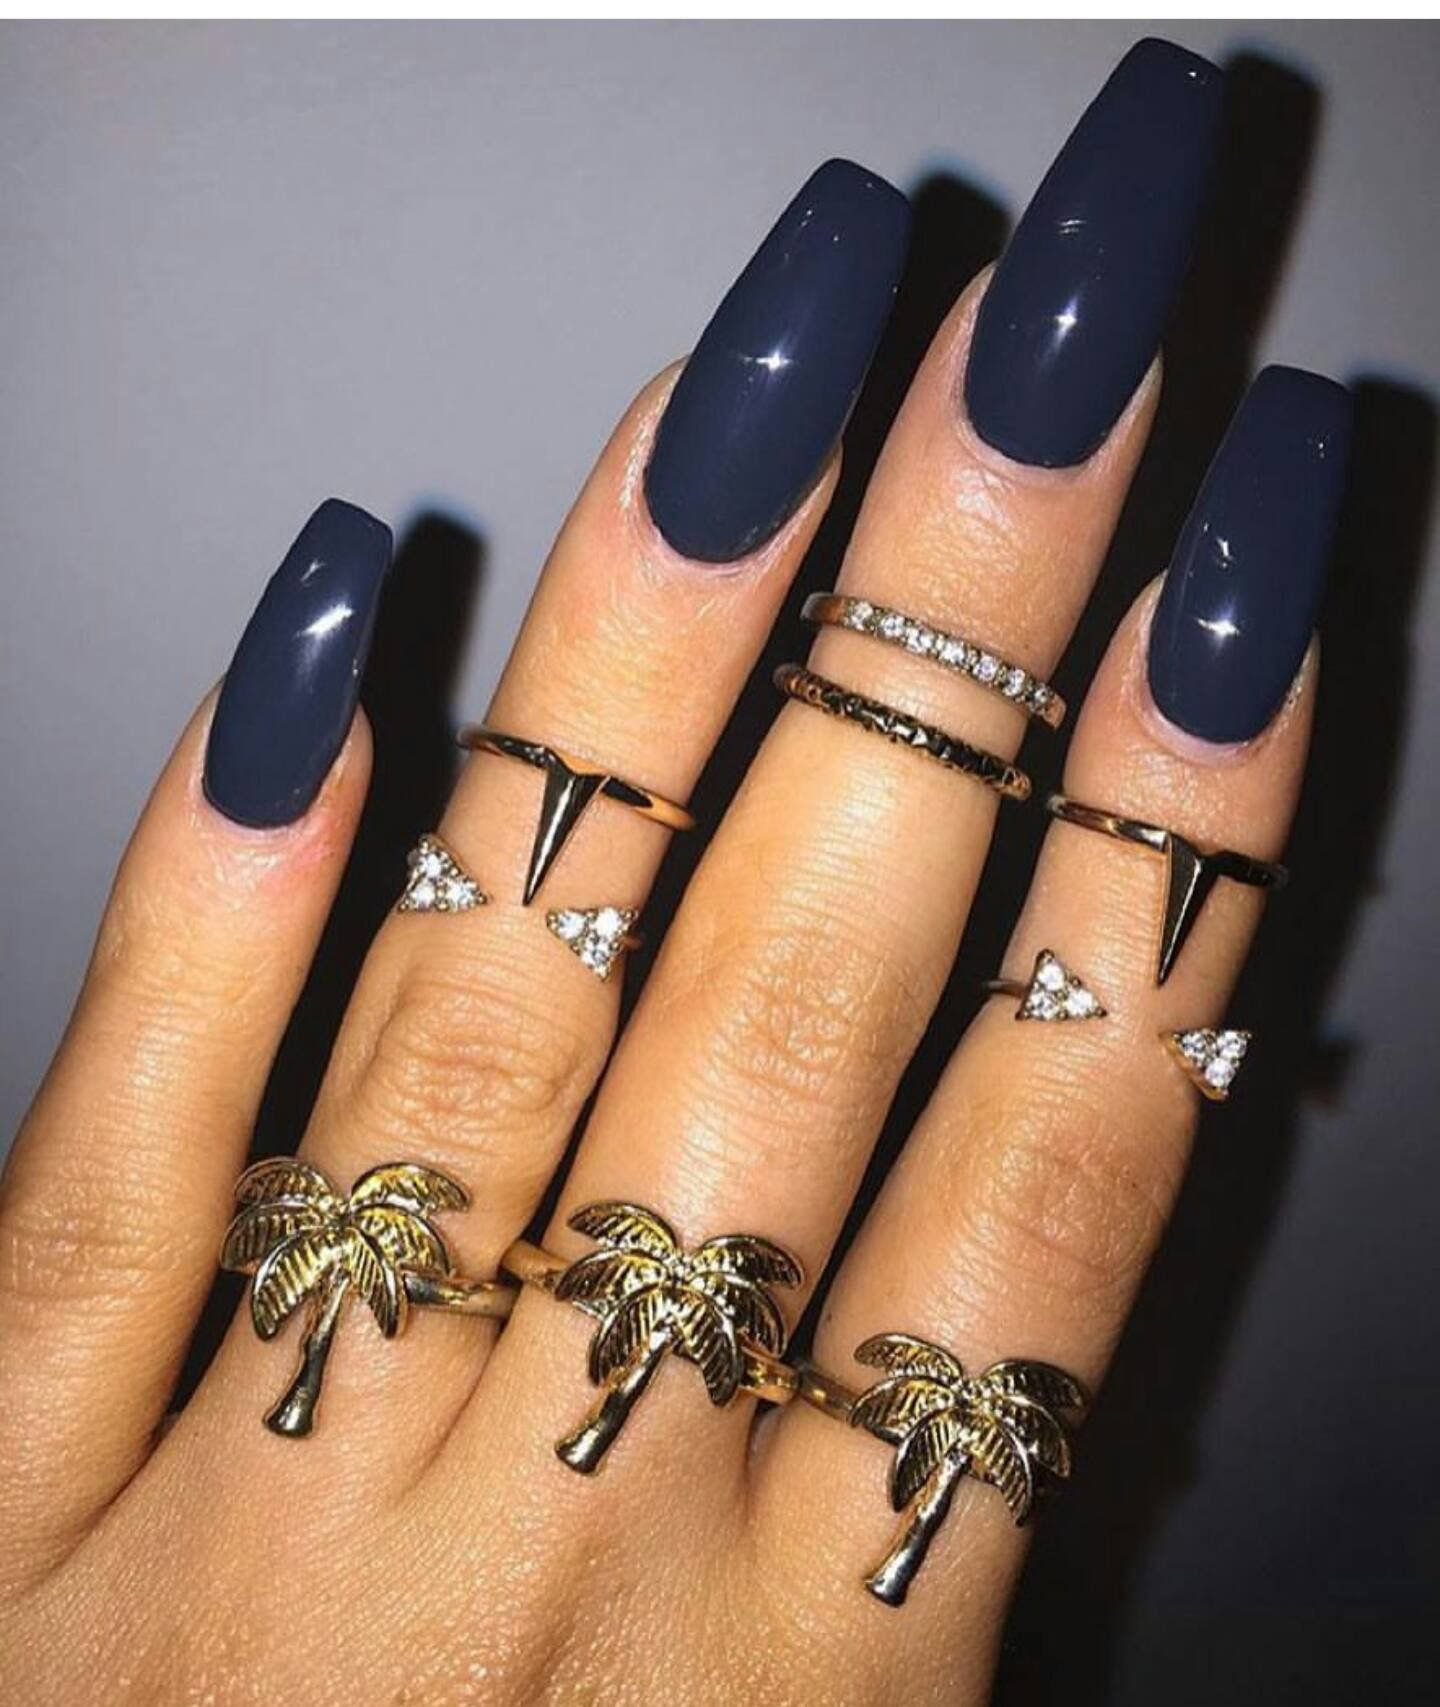 Thatgirlthotty ♤ | | Nails | | Pinterest | Nail inspo, Makeup and ...